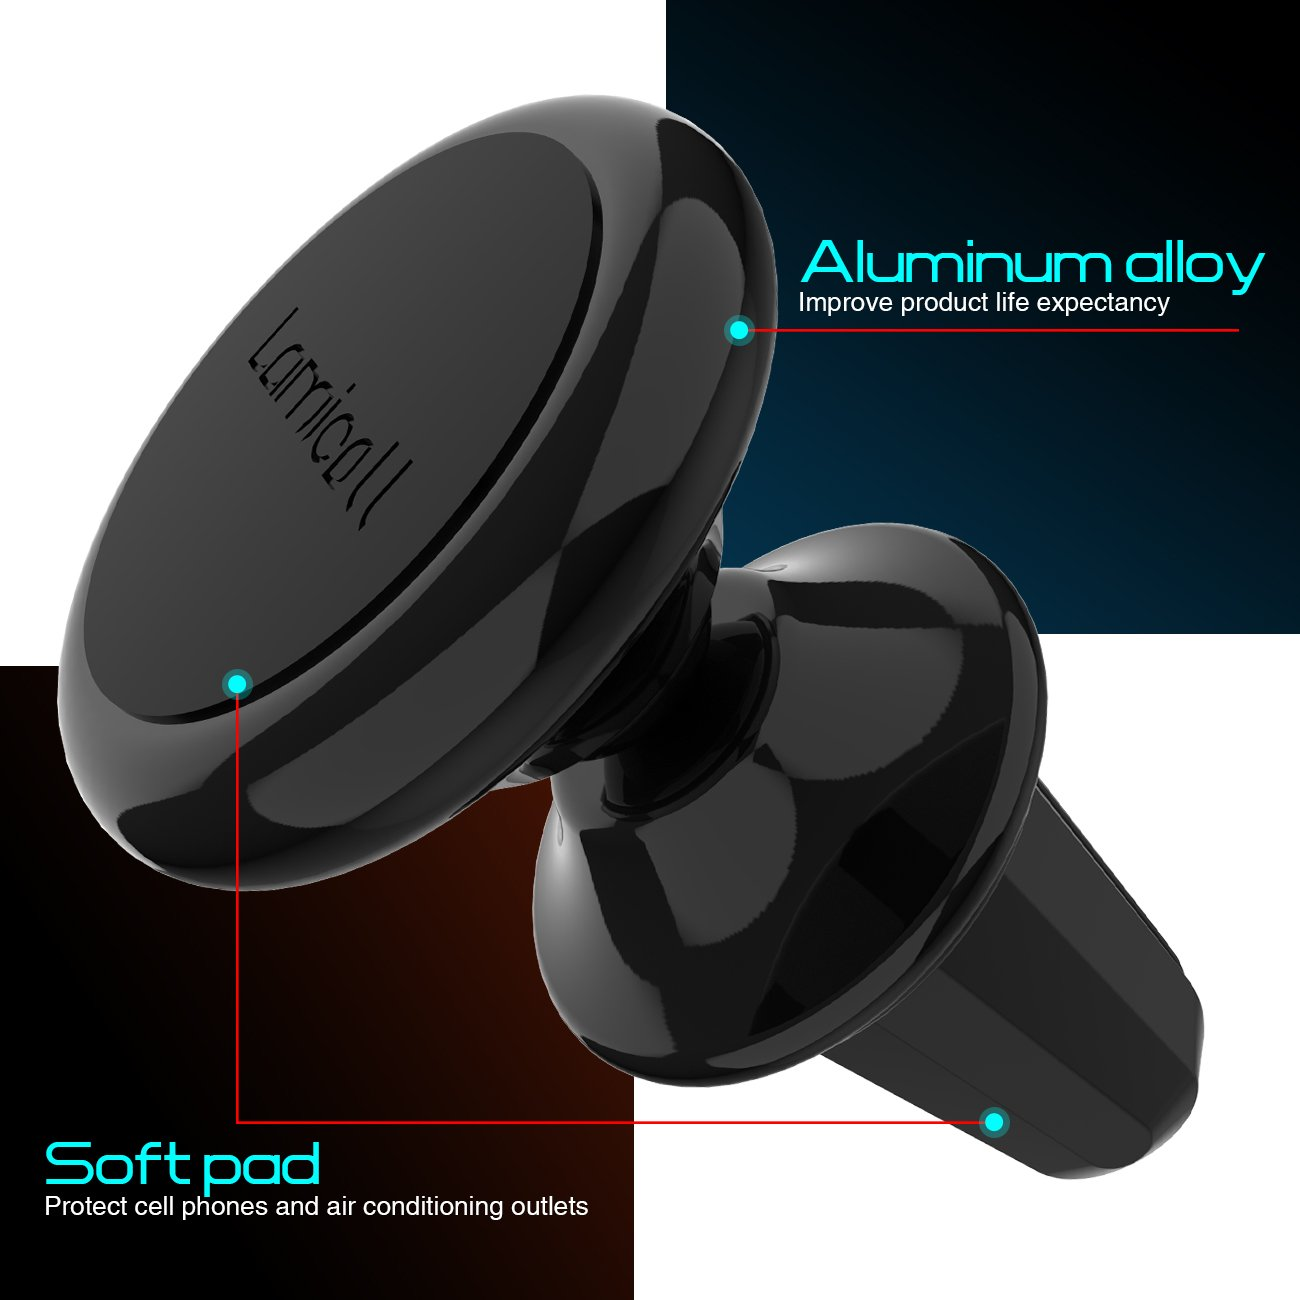 Magnetic Phone Car Mount Lamicall Phone Holder : Universal Cradle Stand Holder Compatible with Phone 8 X 7 7P 6s 6P 5S LG Google Pixel Other Smartphones C-US-Bb Huawei Galaxy S5 S6 S7 S8